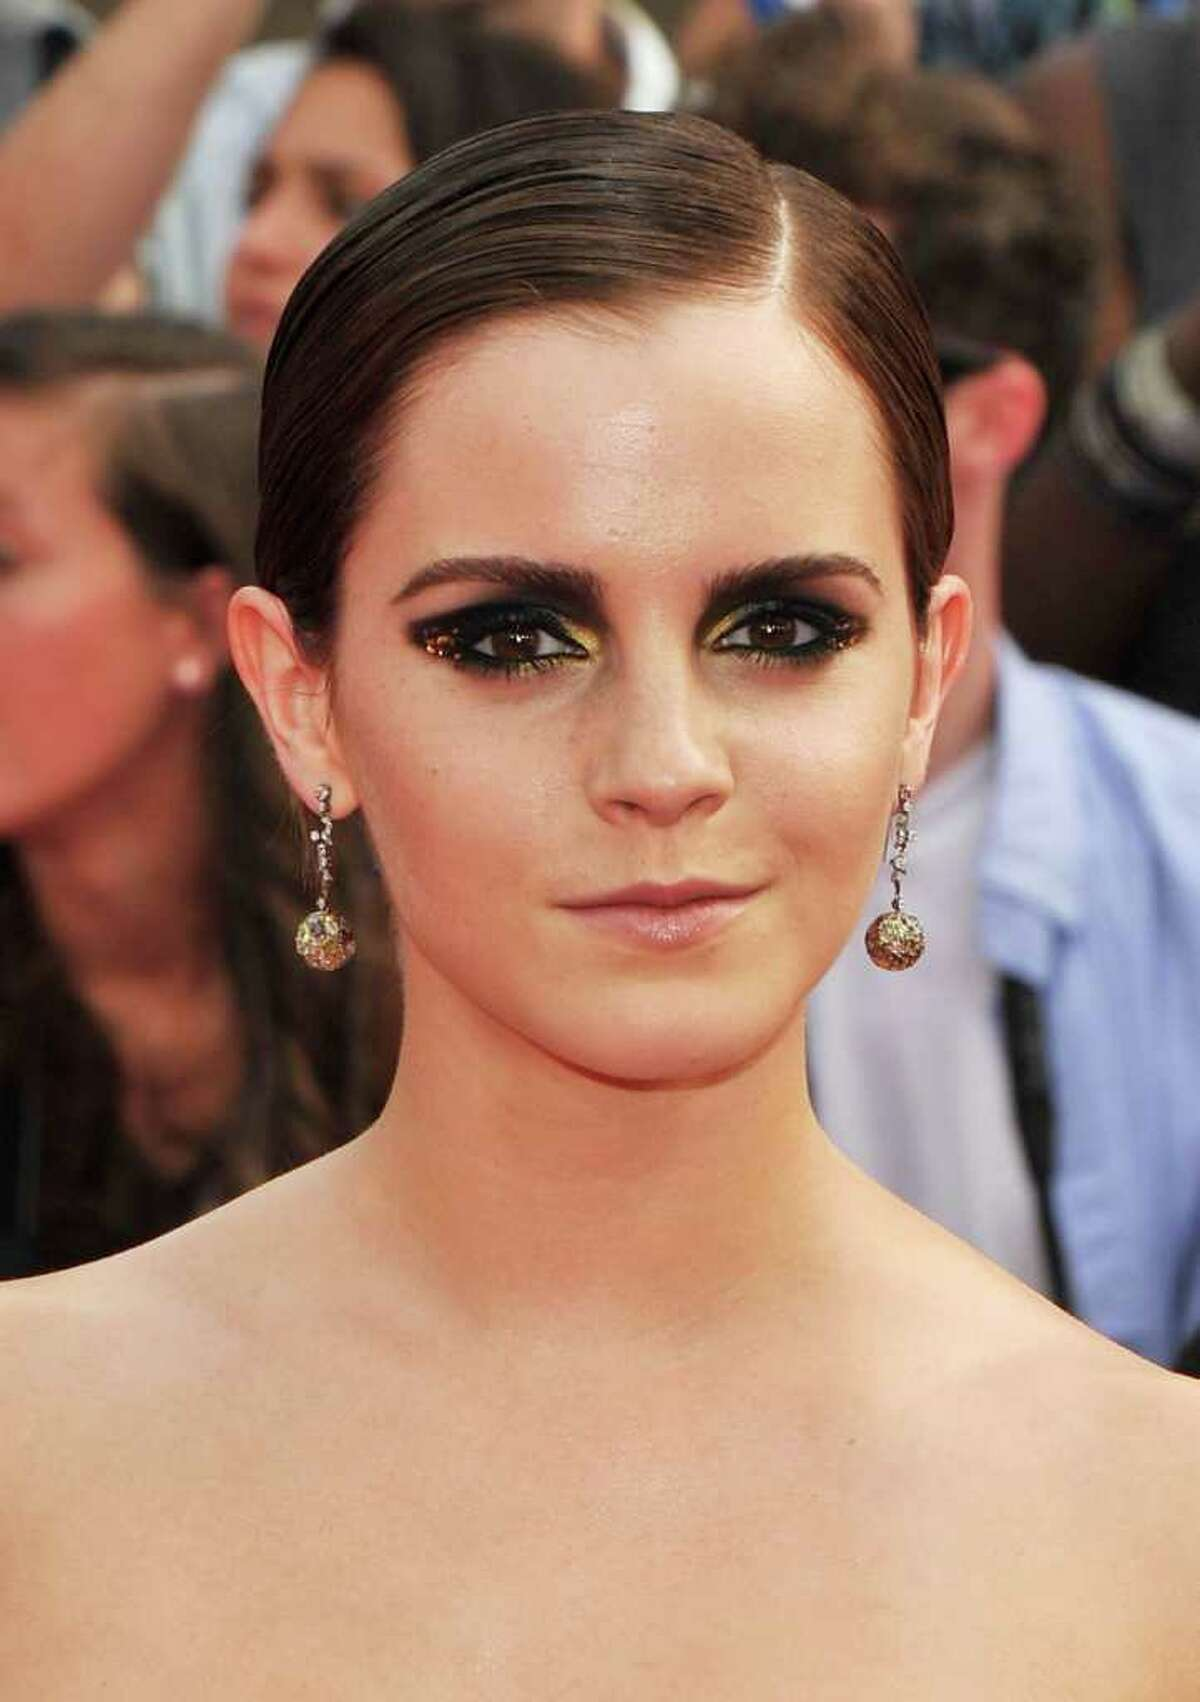 Actress Emma Watson attends the New York premiere of